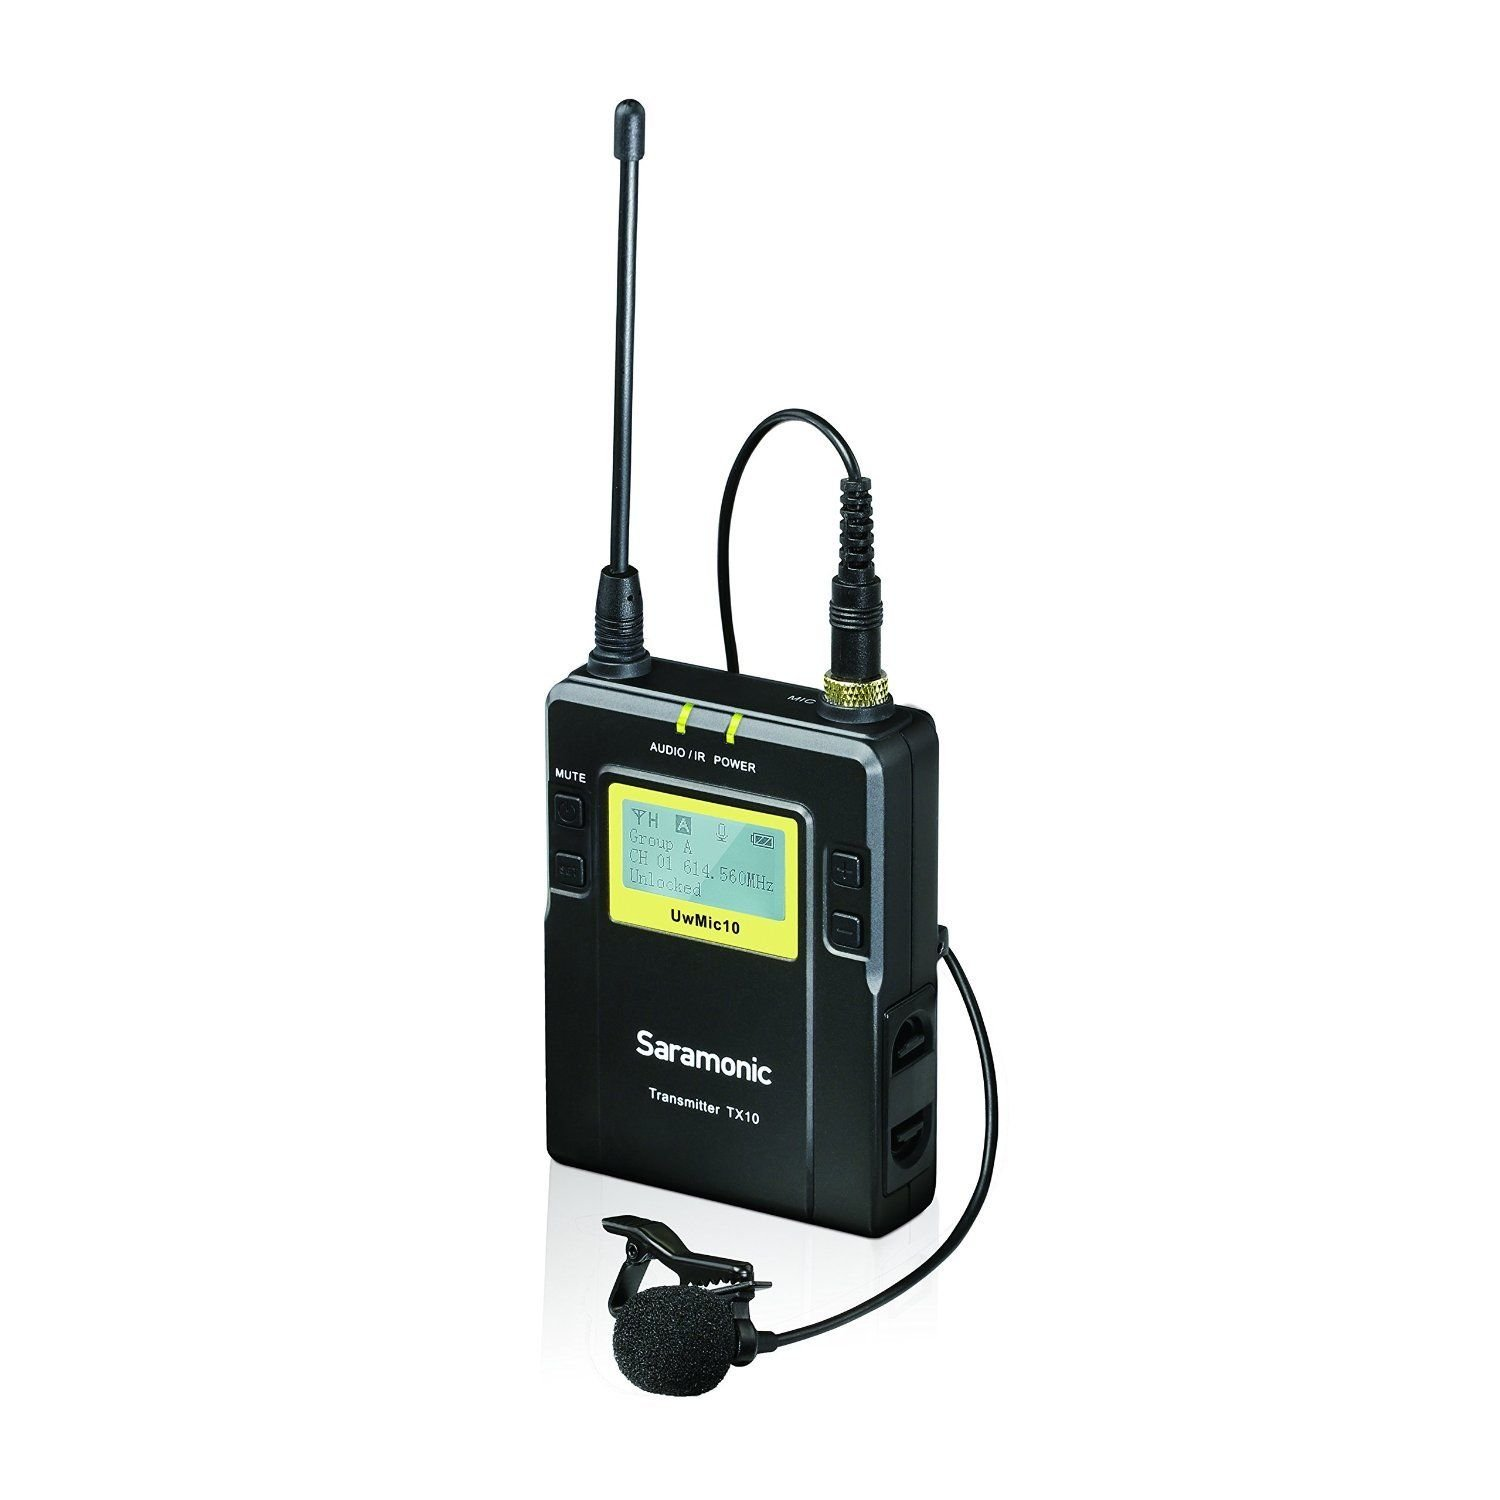 Saramonic UWMIC10 96-Channel Digital UHF Wireless Lavalier Microphone System with 2 Bodypack Transmitters, Portable Receiver, 2 Lav Mics, Shoe Mount, XLR/3.5mm Outputs + More by Saramonic